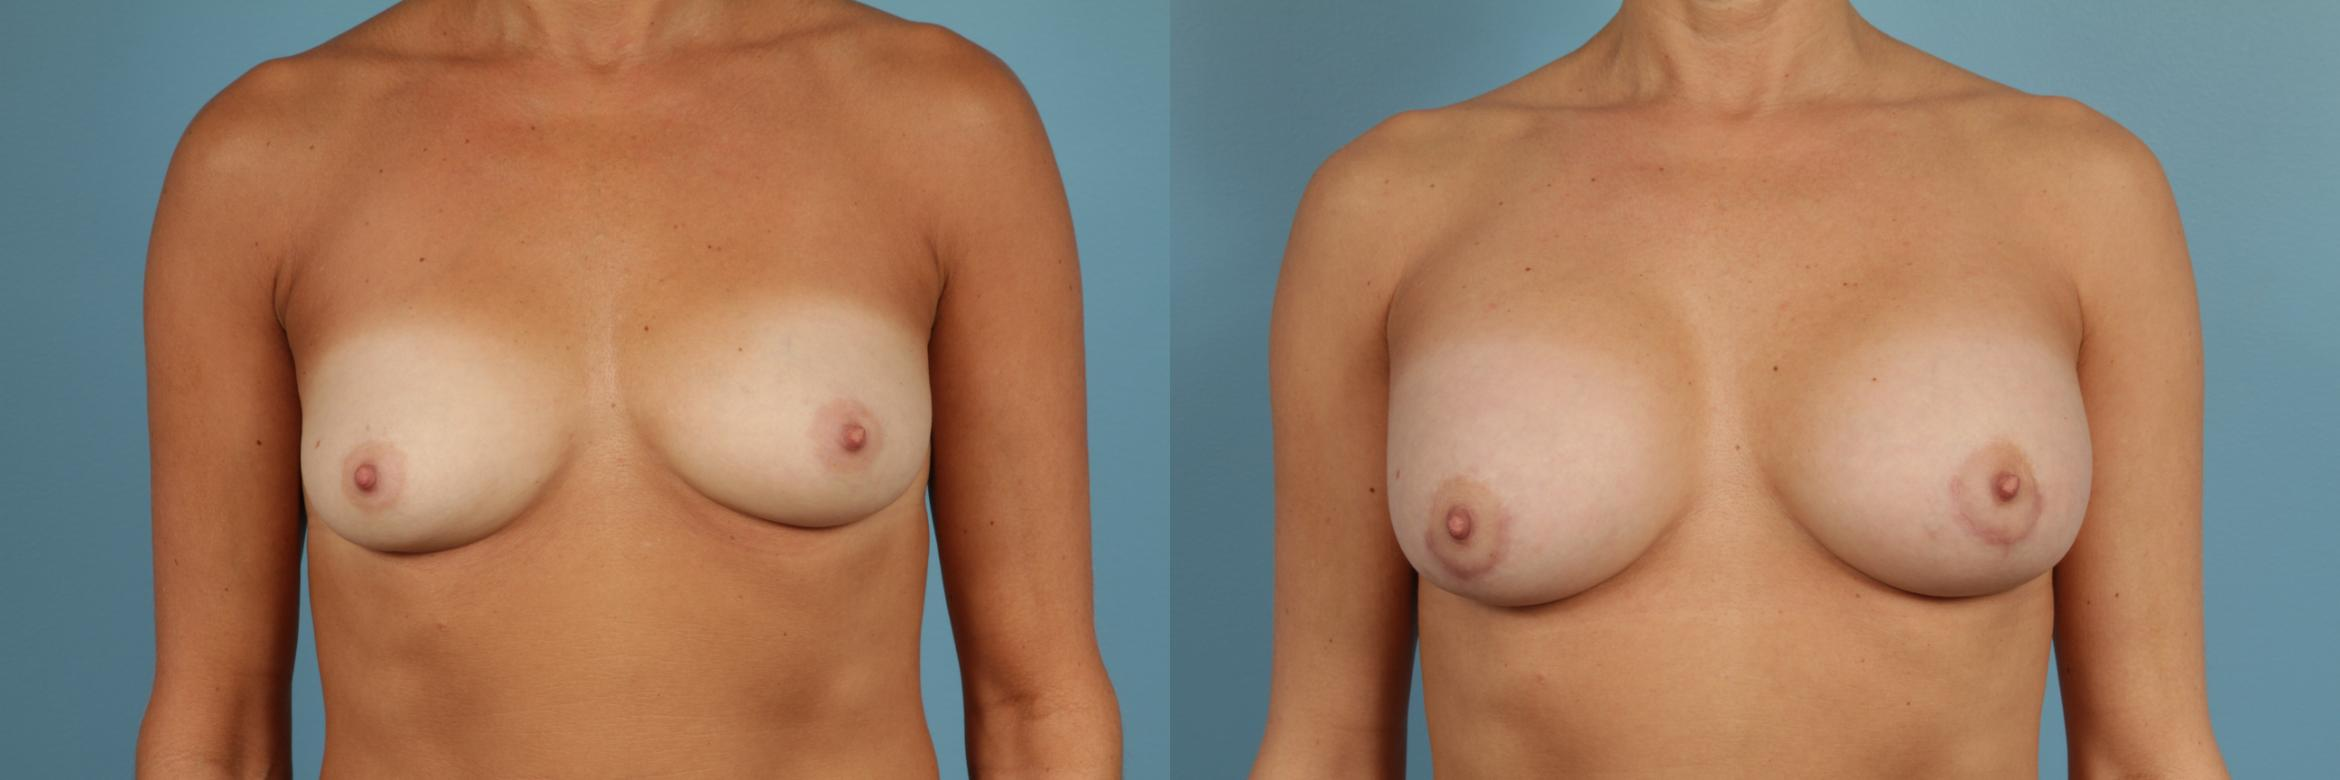 Breast Augmentation Case 263 Before & After View #1 | Chicago, IL | TLKM Plastic Surgery